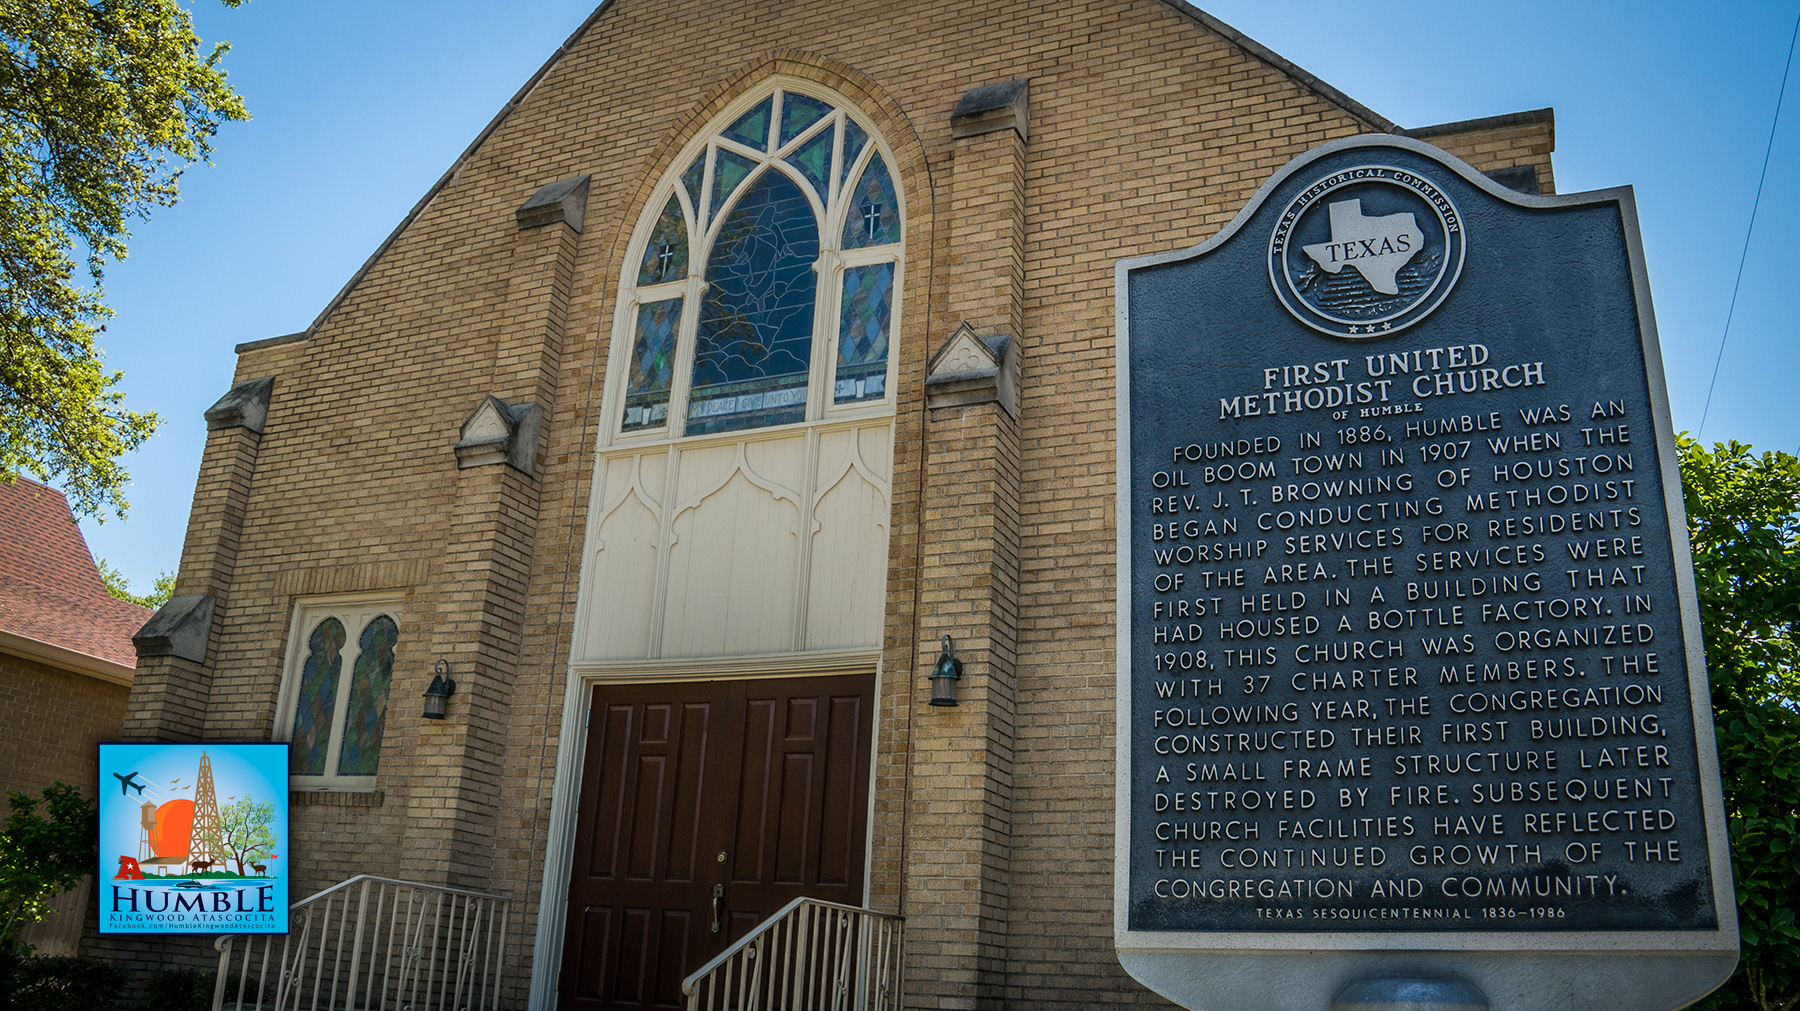 First United Methodist Church of Humble - Humble (86) - Historical